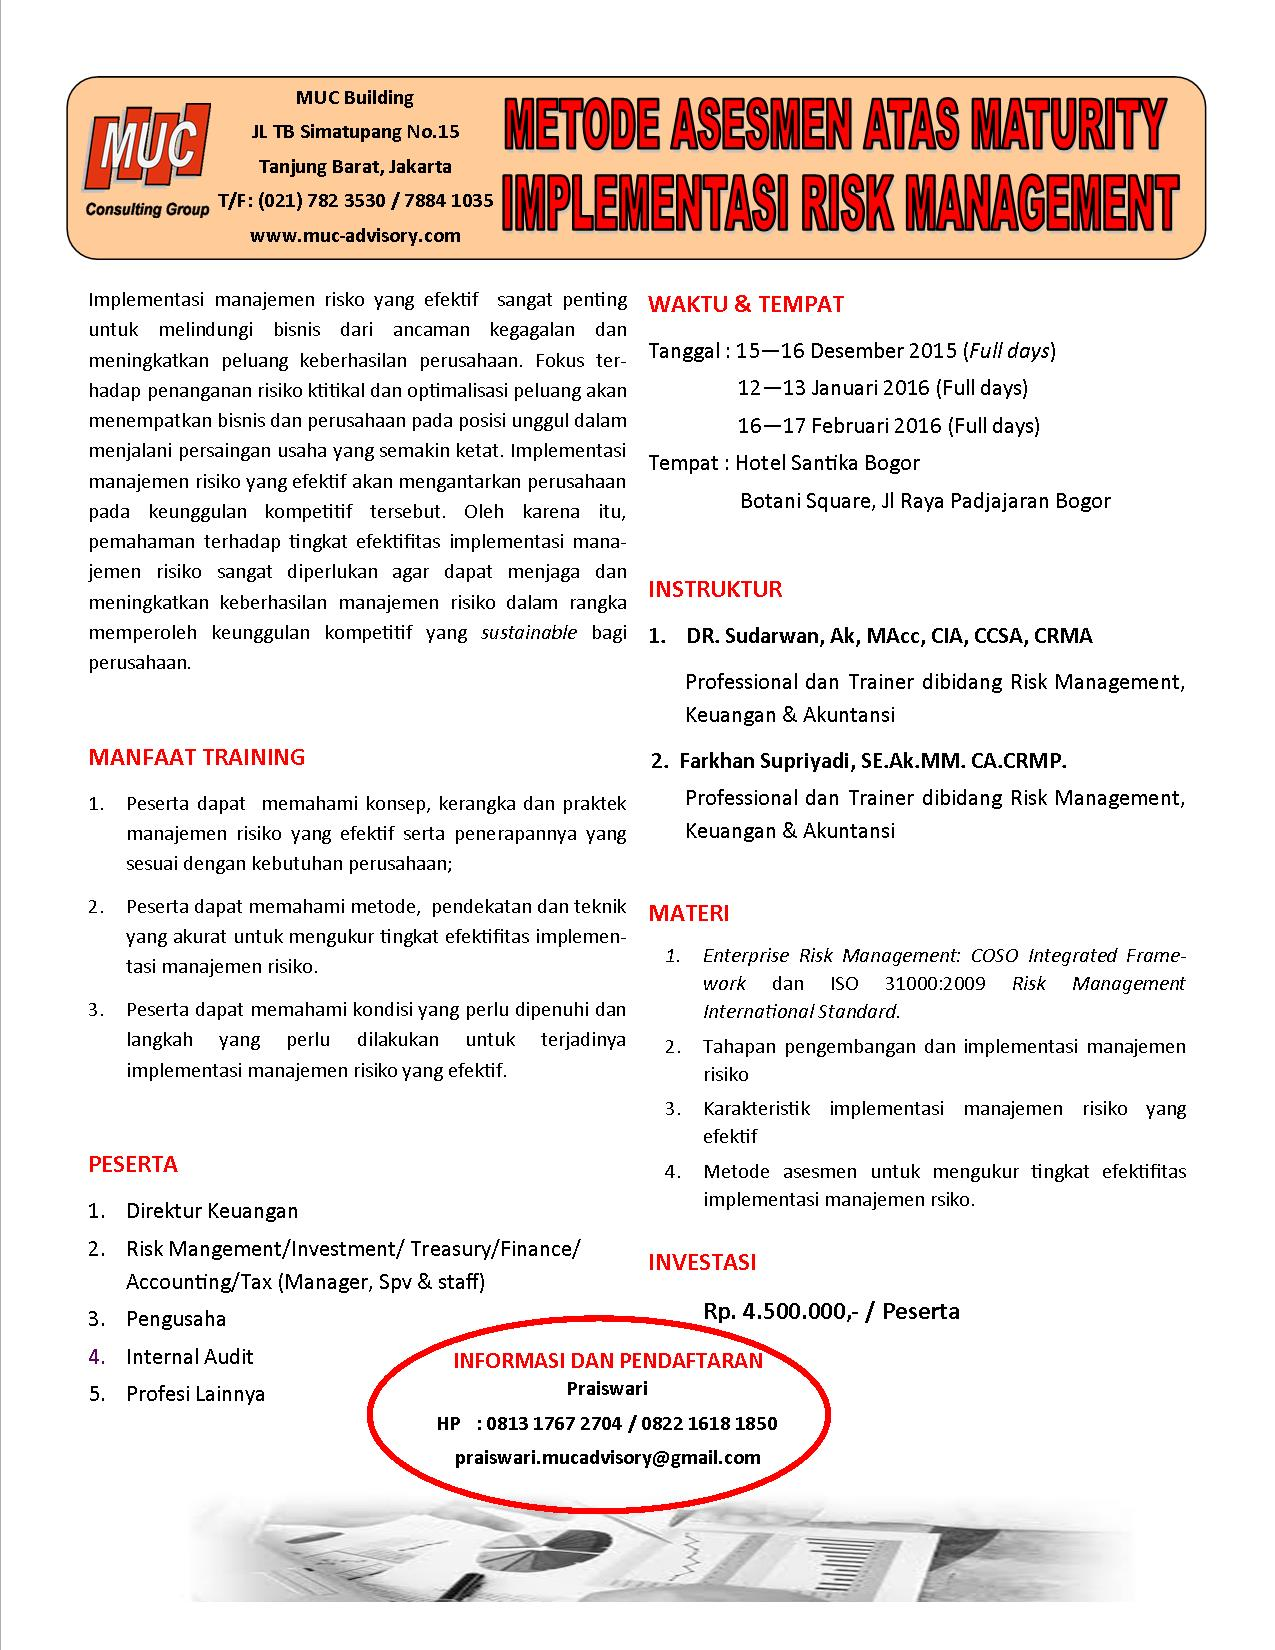 managers workshop report Misappropriation by managers  workshops reporting format for rapporteurs 6  please provide the completed workshop report, in hard copy or electronic copy to .